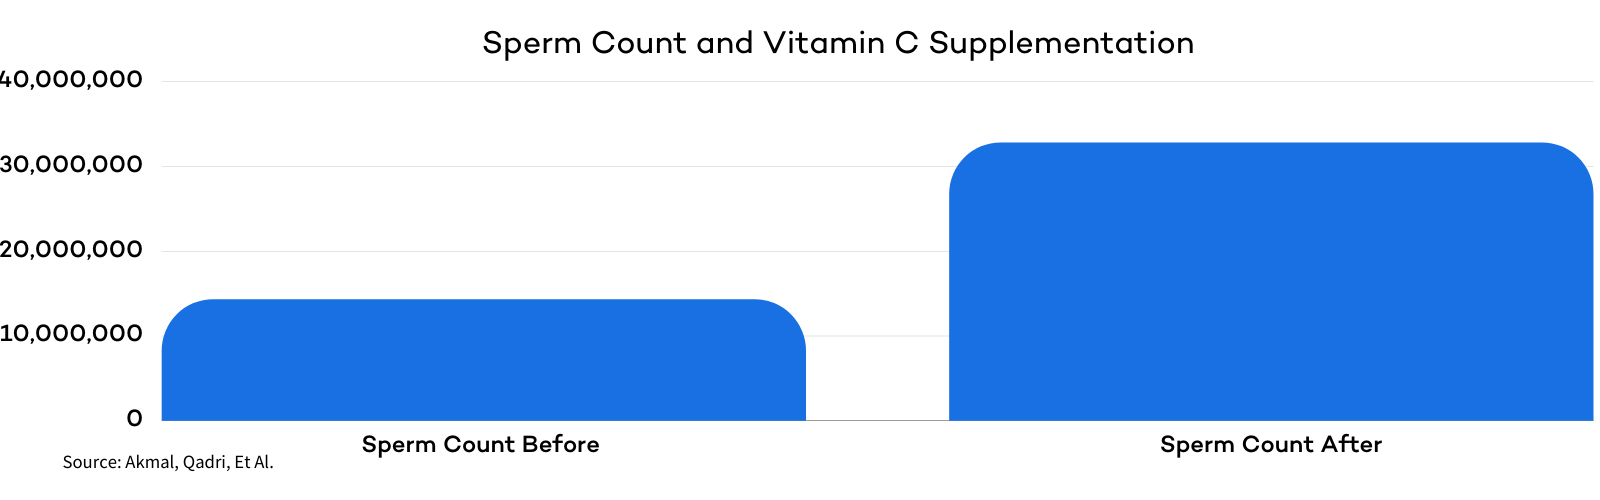 Vitamin C and Sperm Count